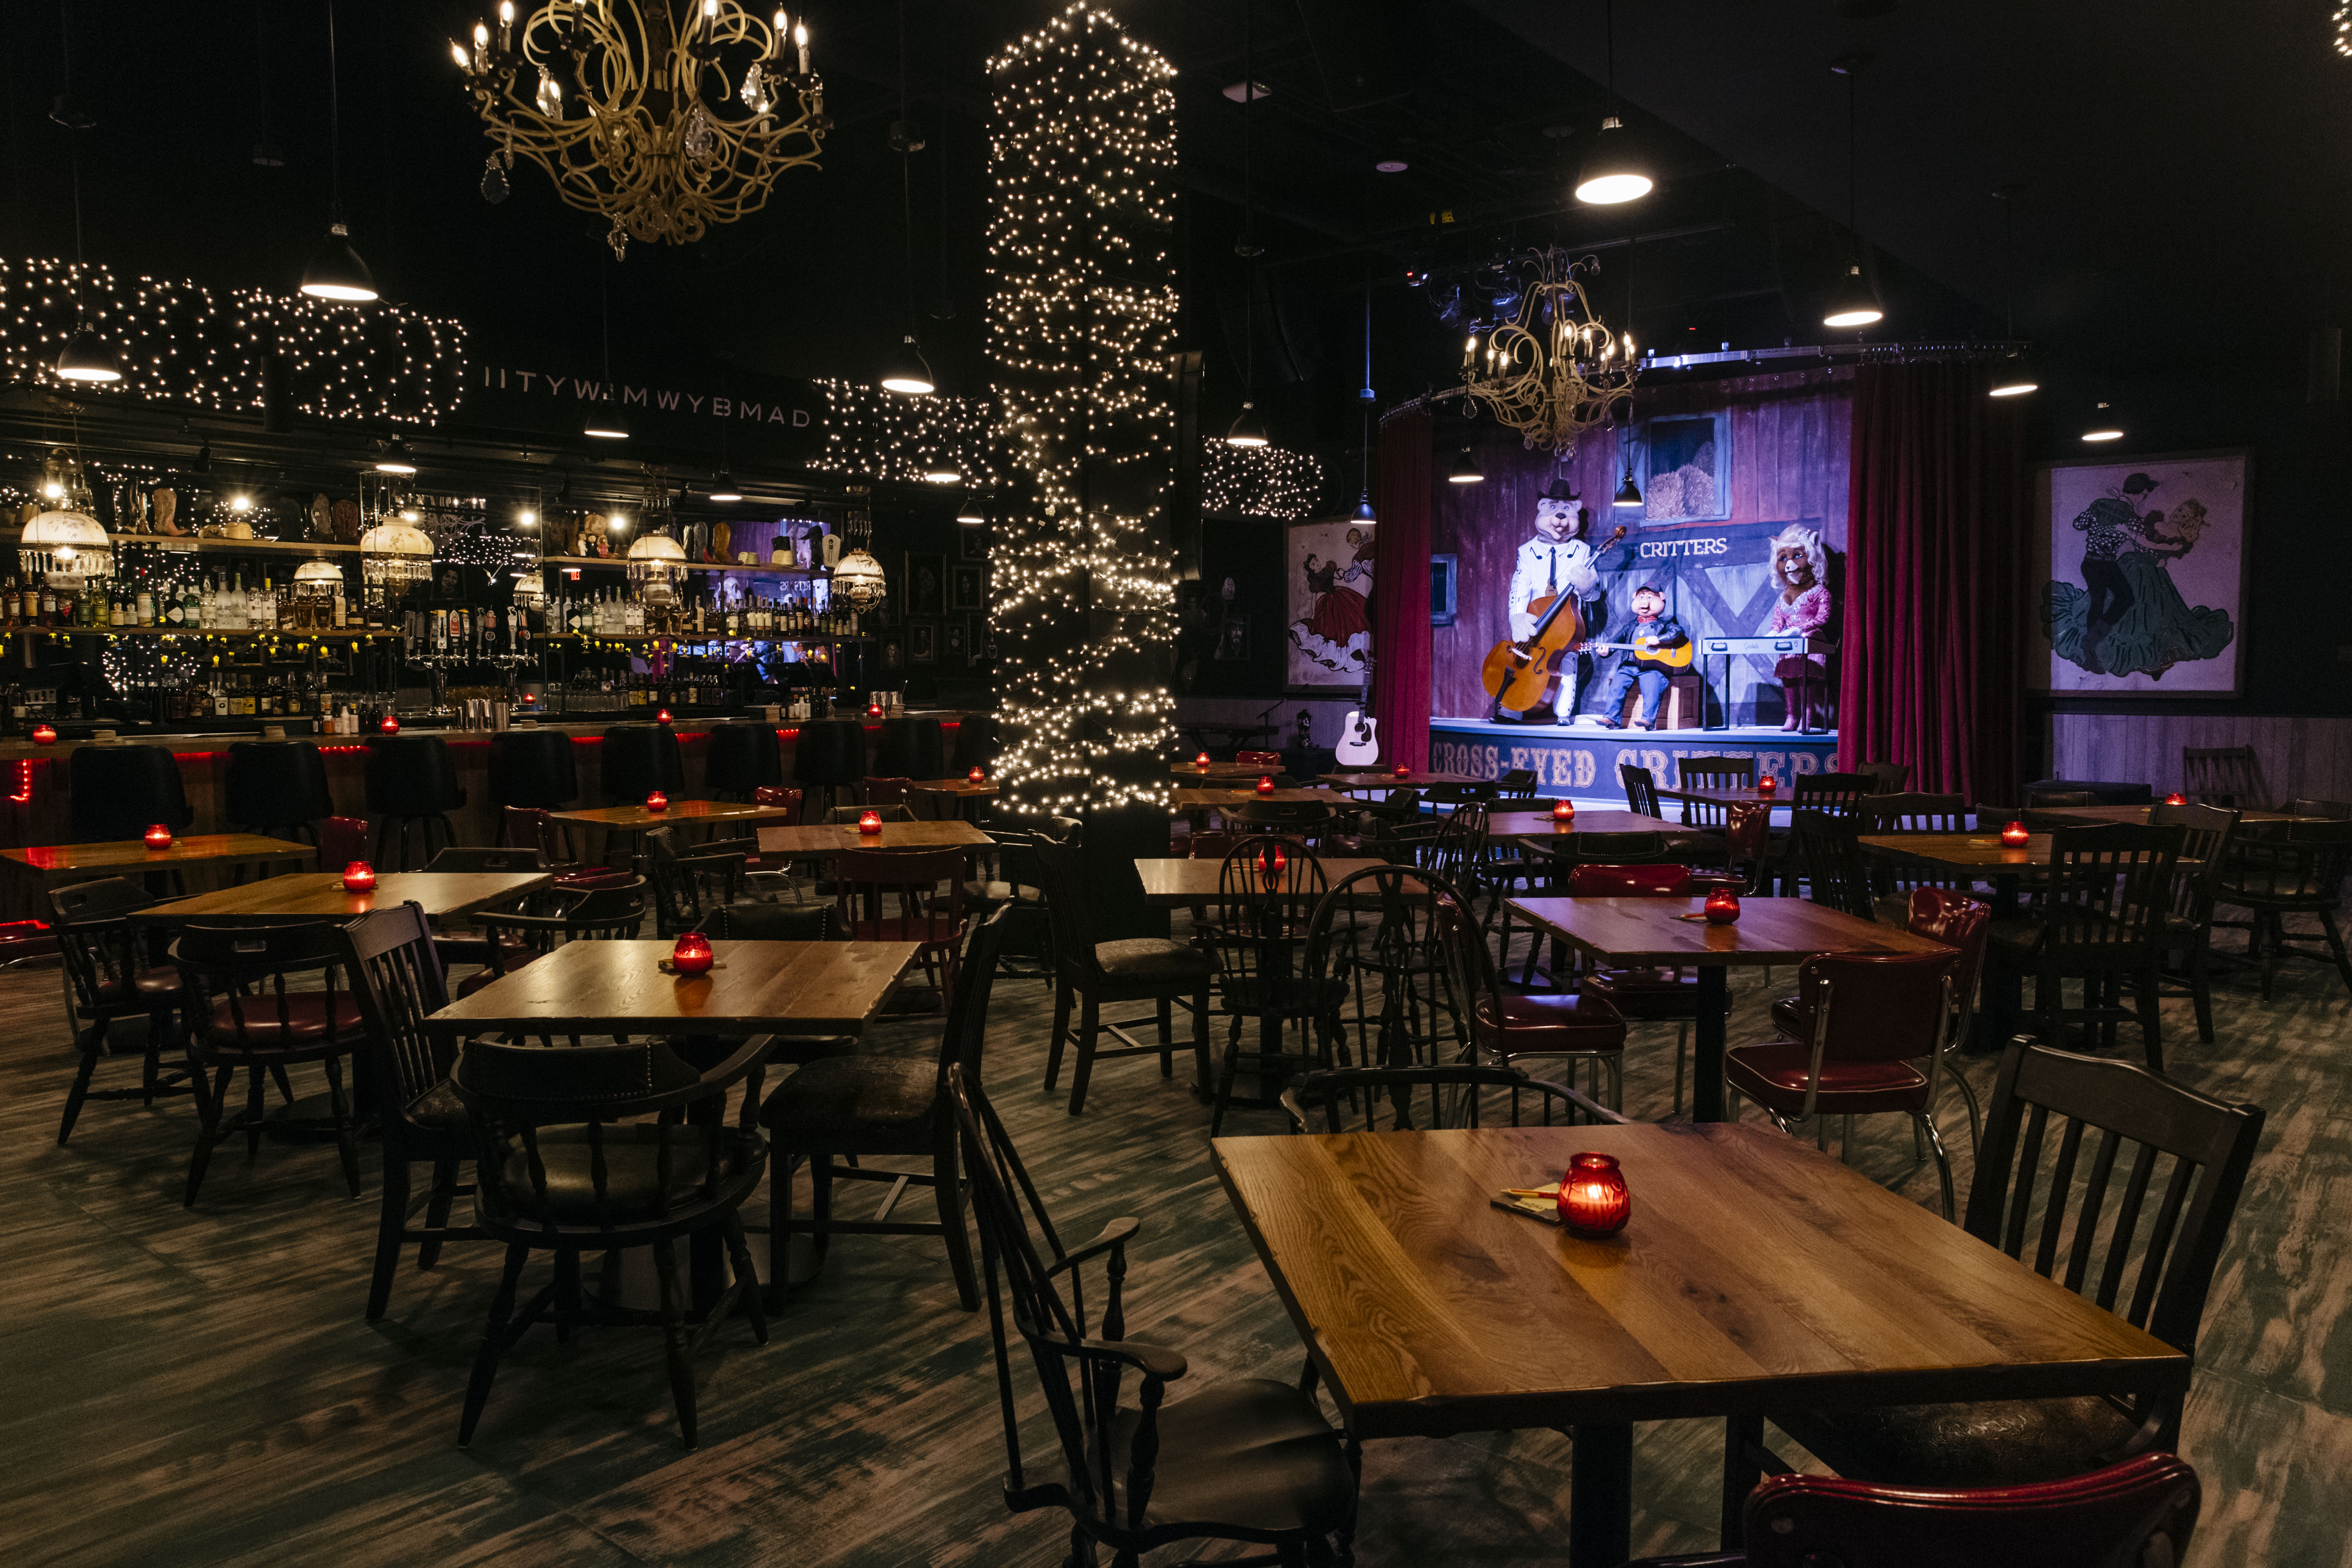 New Graduate Hotel Gives Nashville Animatronic Karaoke and Late Night Tacos